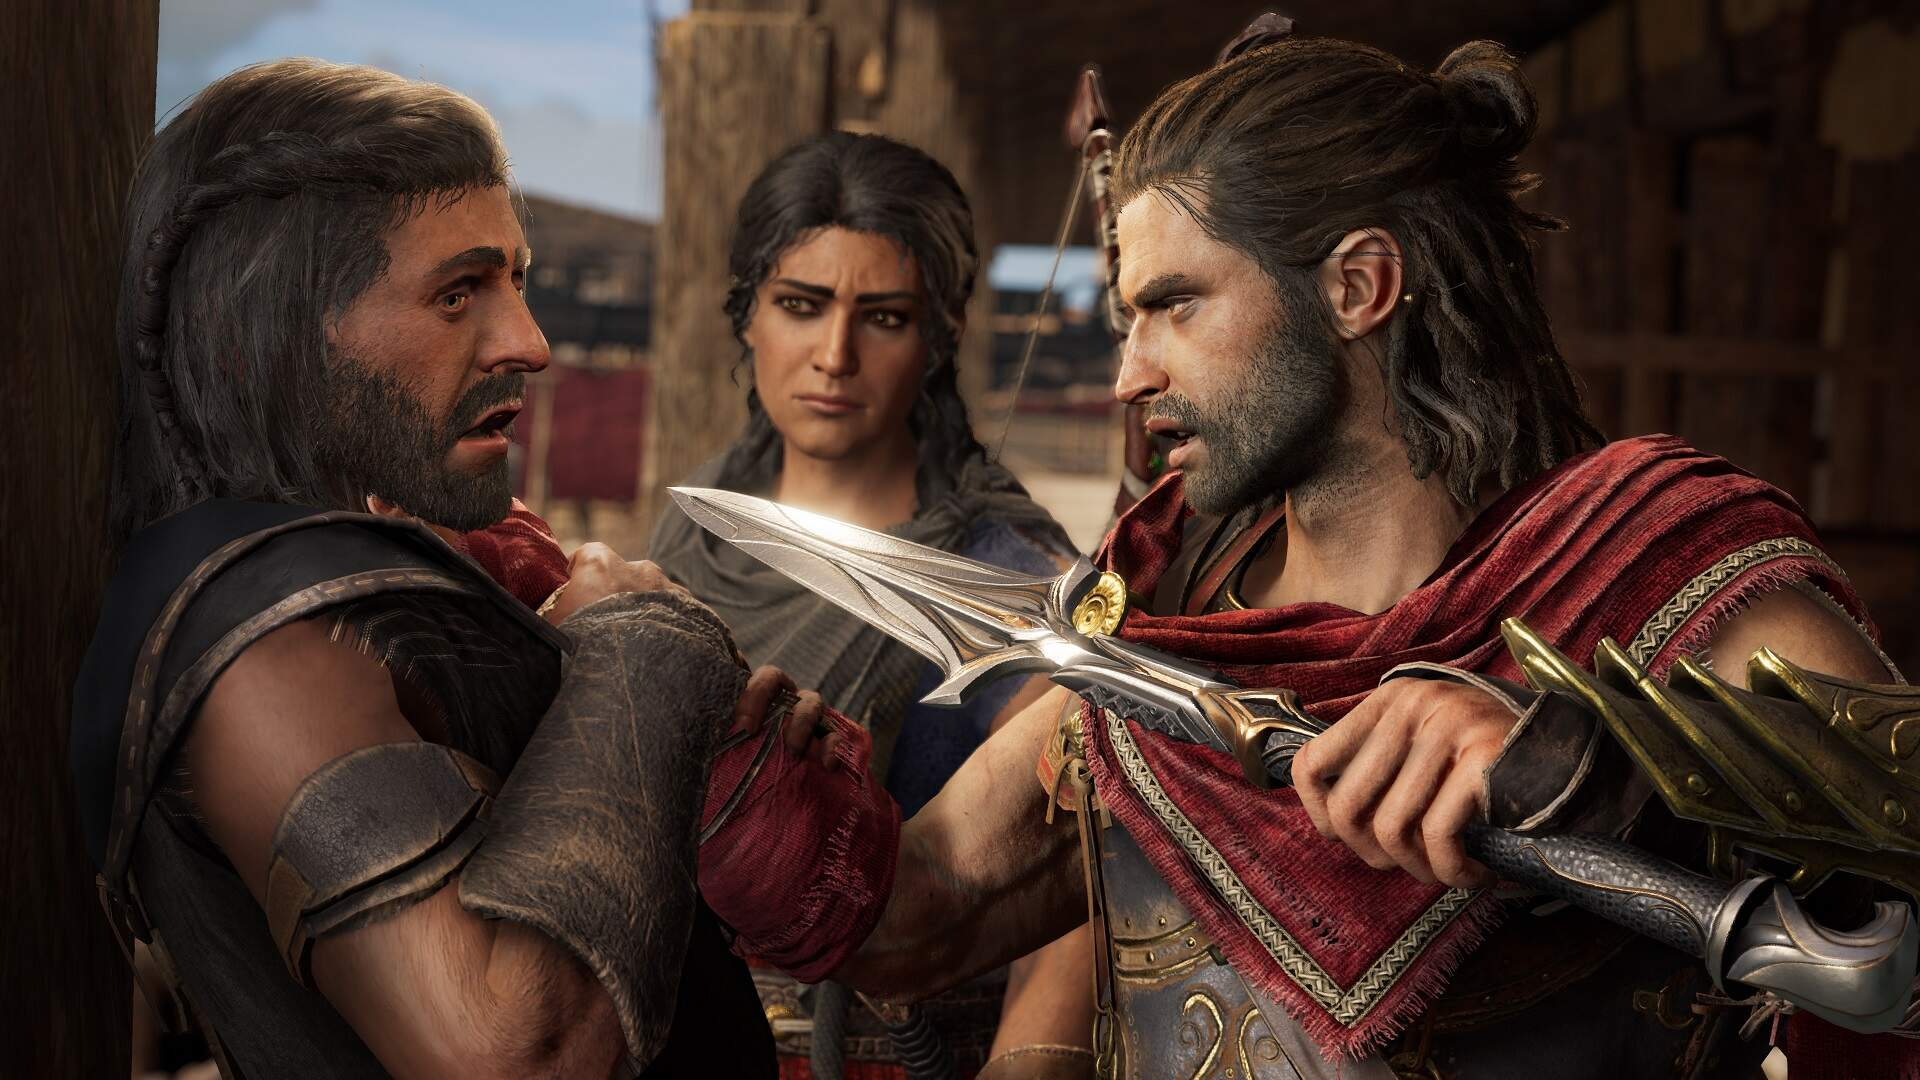 Assassin's Creed Odyssey Players Are Using the Story Creator to Farm XP, and Ubisoft Is Having None of It